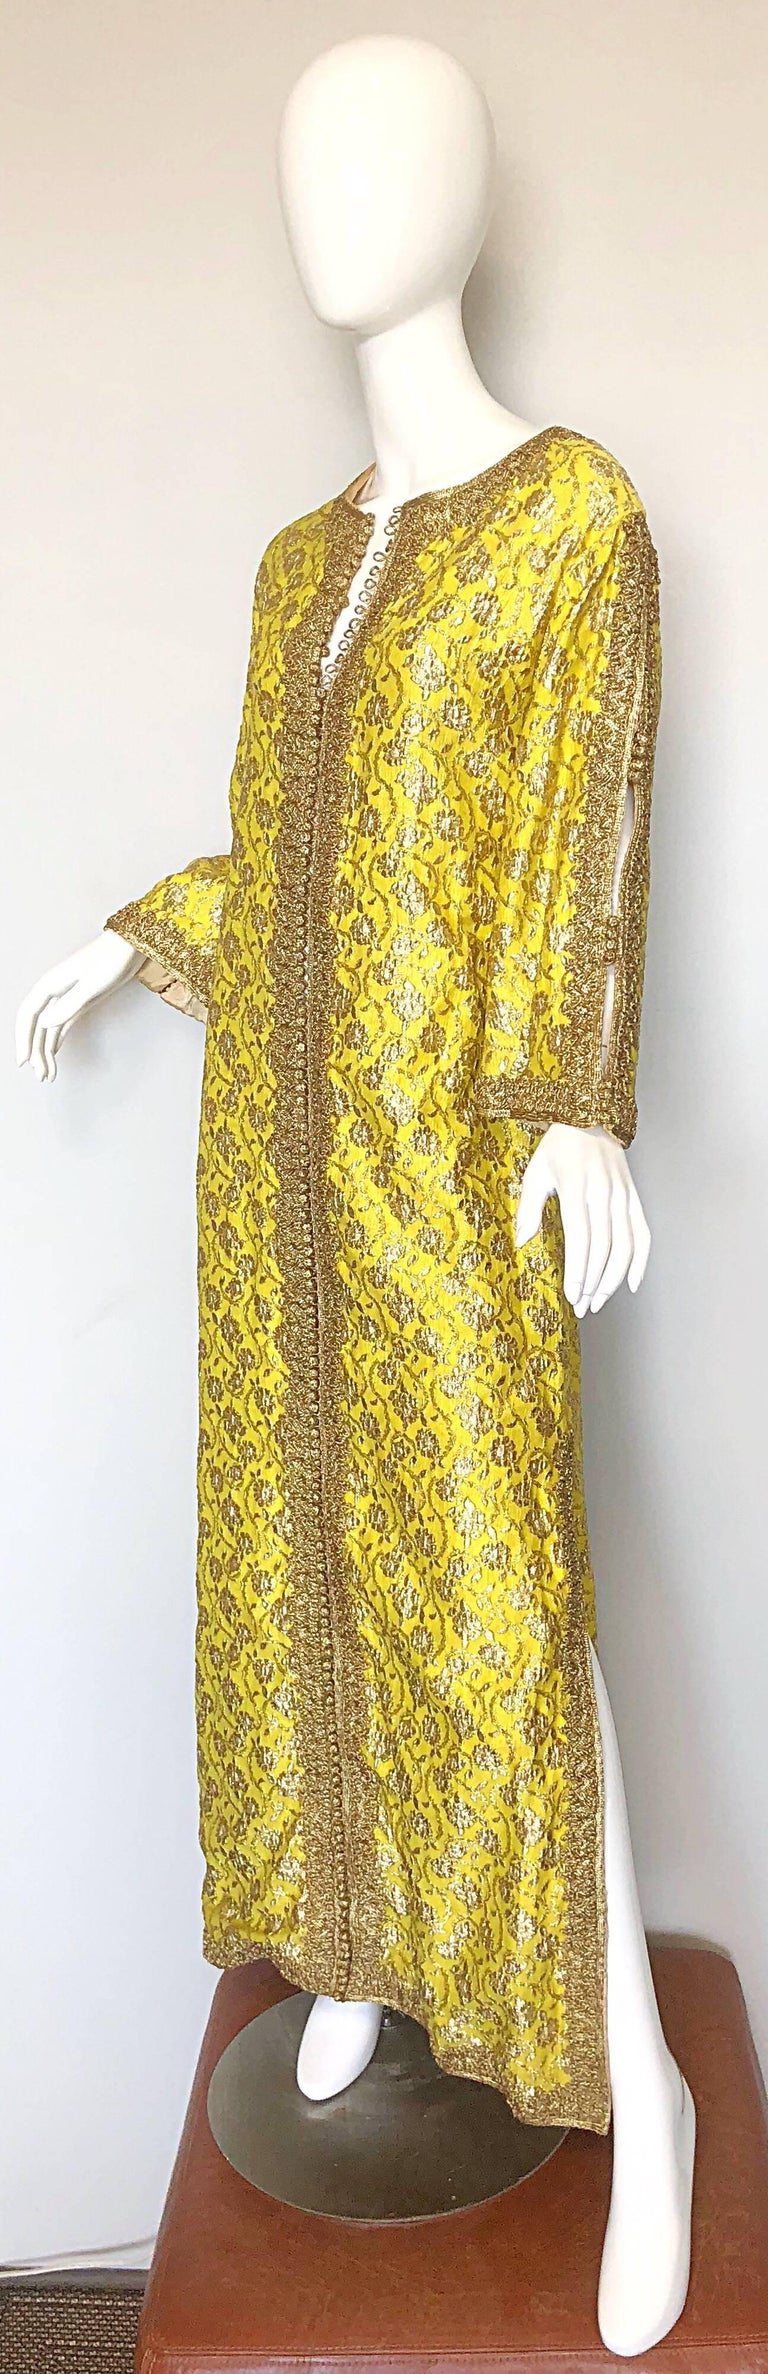 Amazing 1960s Moroccan Couture Silk Brocade Yellow + Gold Caftan 60s Maxi Dress In Excellent Condition For Sale In Chicago, IL